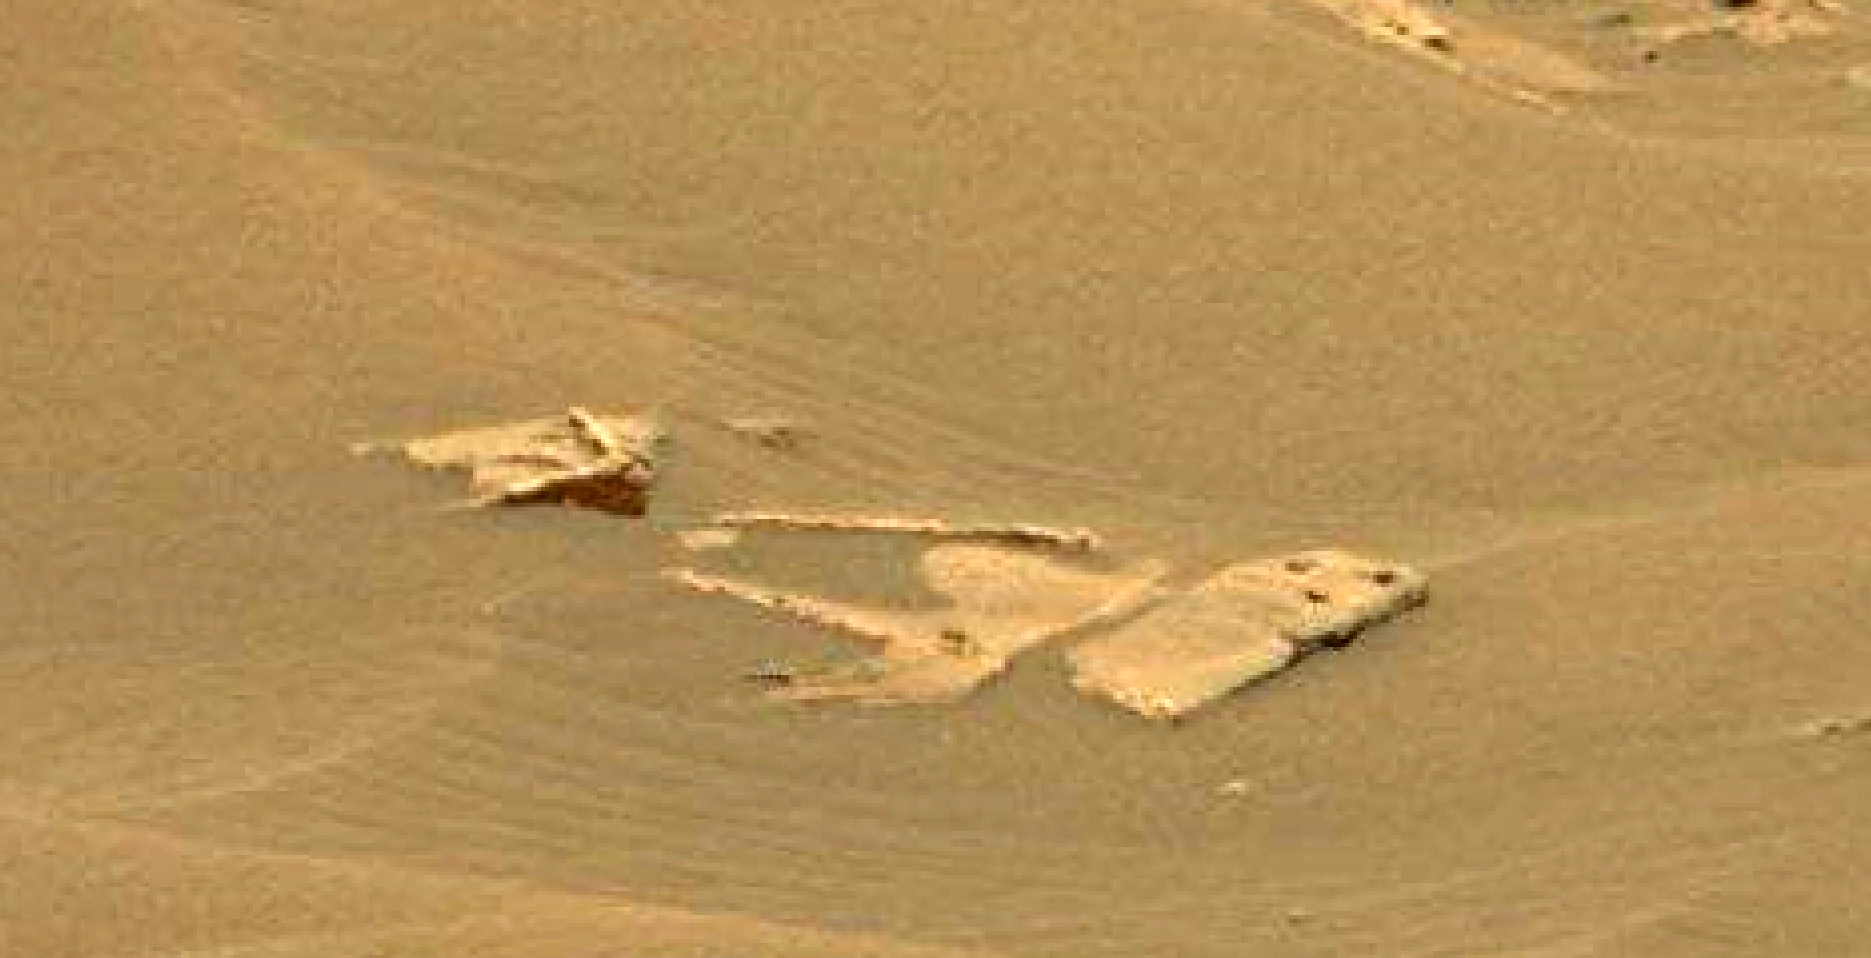 mars sol 1353 anomaly-artifacts 39 was life on mars